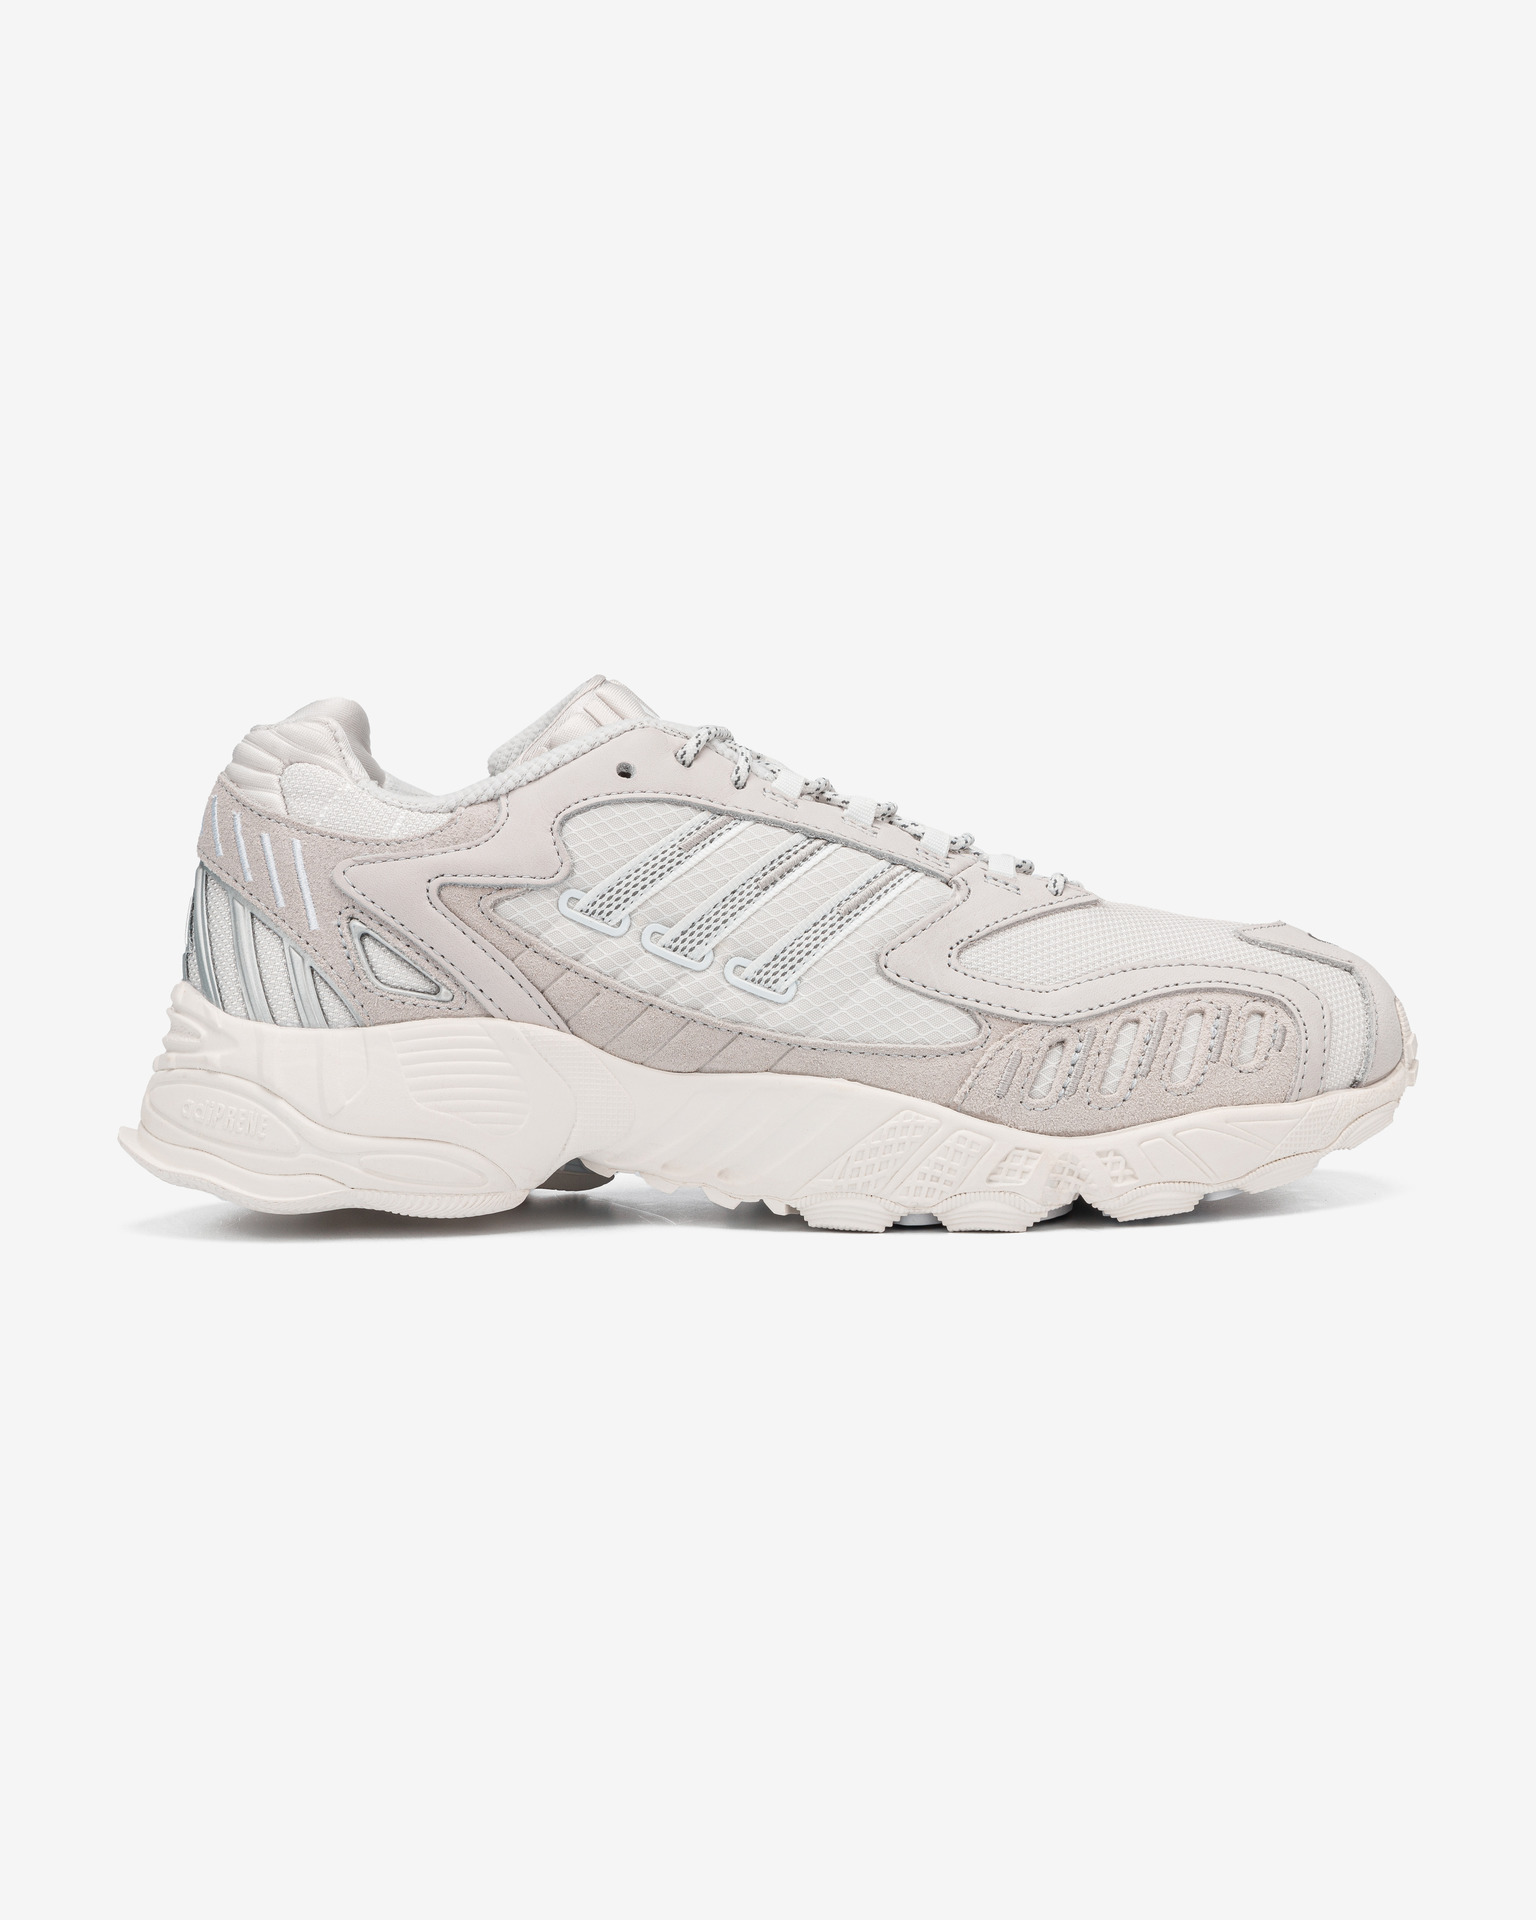 Torsion TRDC Tenisky adidas Originals